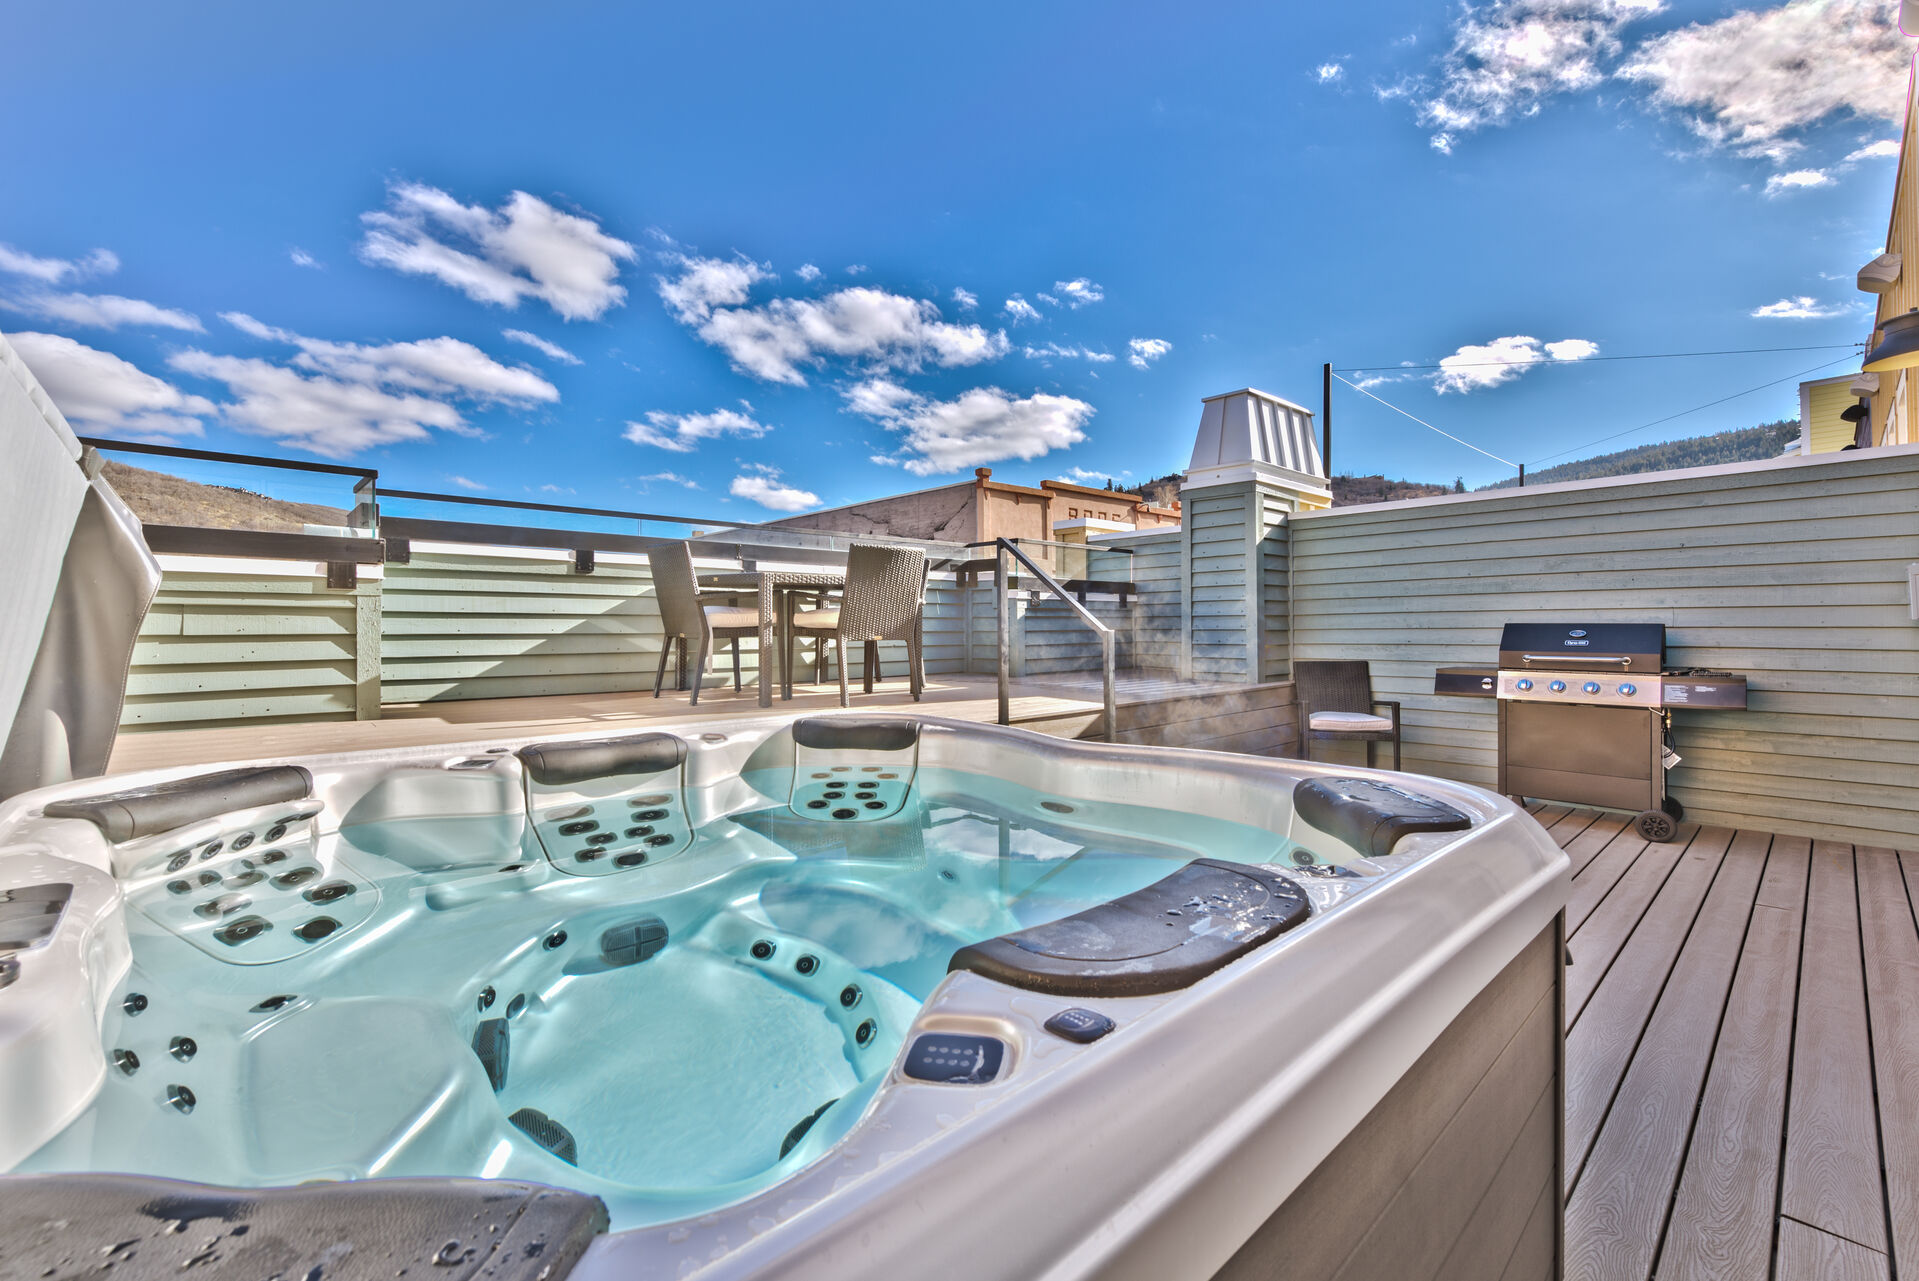 8-Person Hot Tub and BBQ Grill